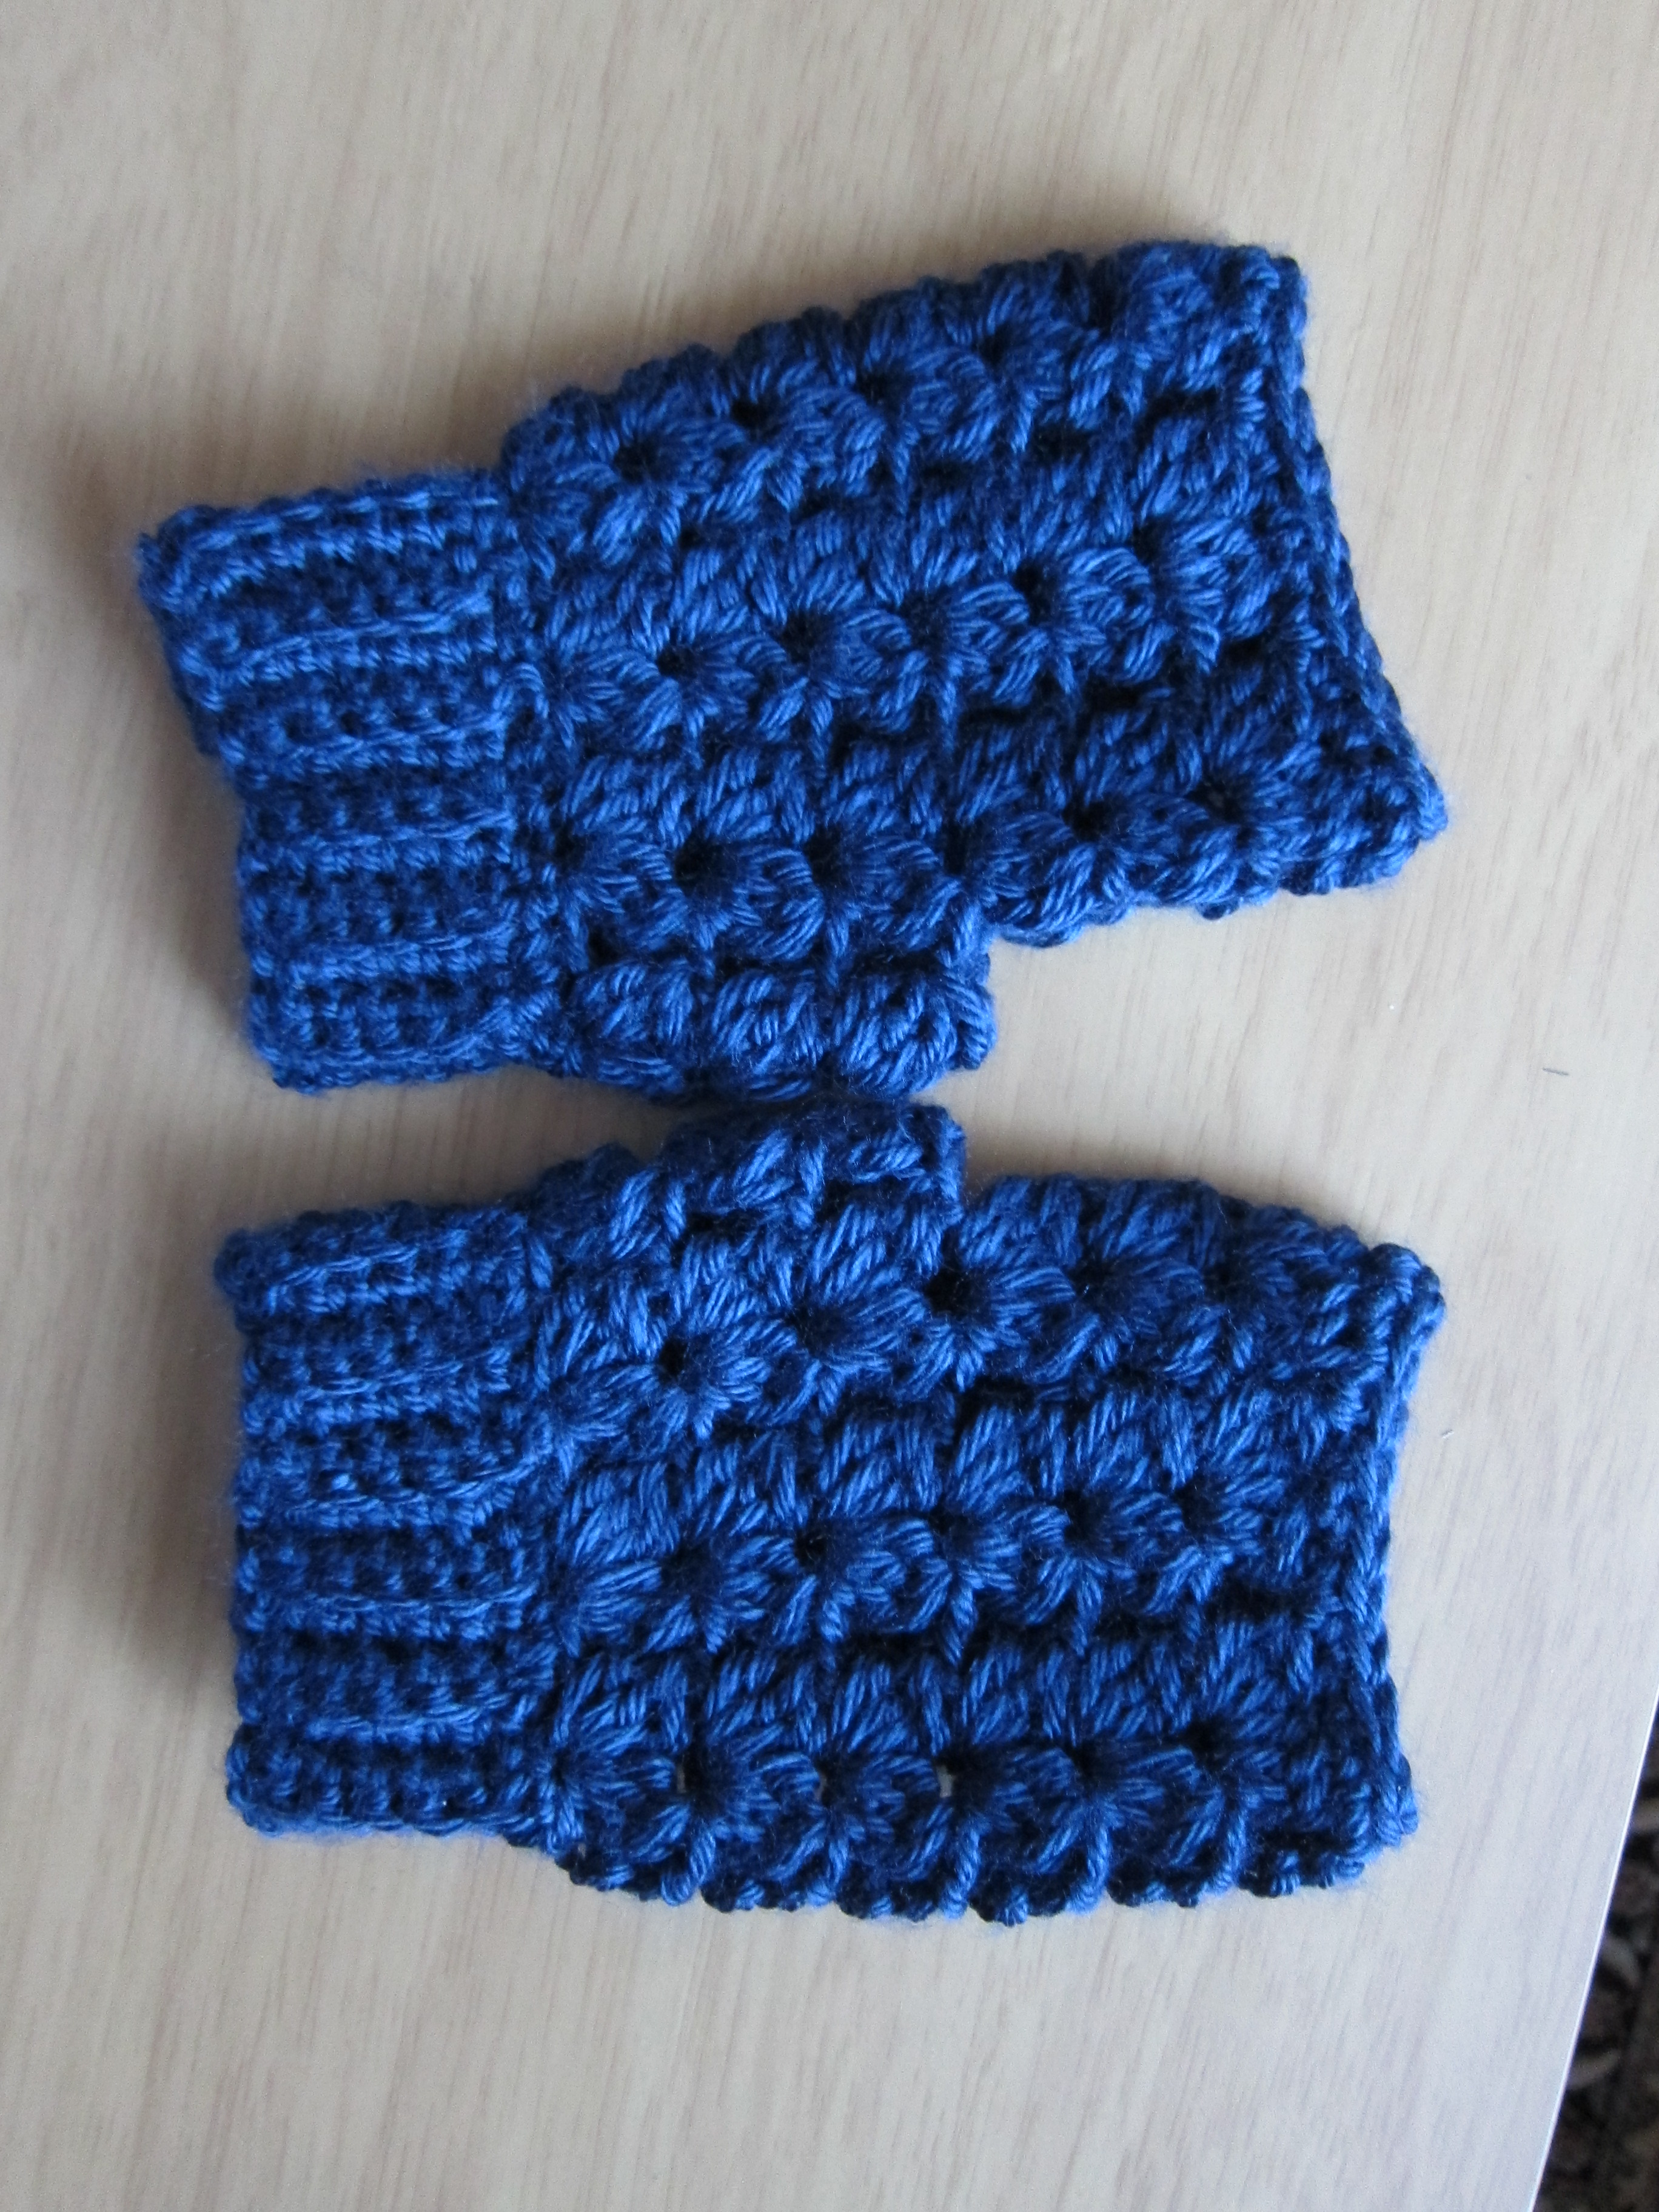 Use a 5 mm crochet hook and worsted weight yarn. I used Caron simply ...